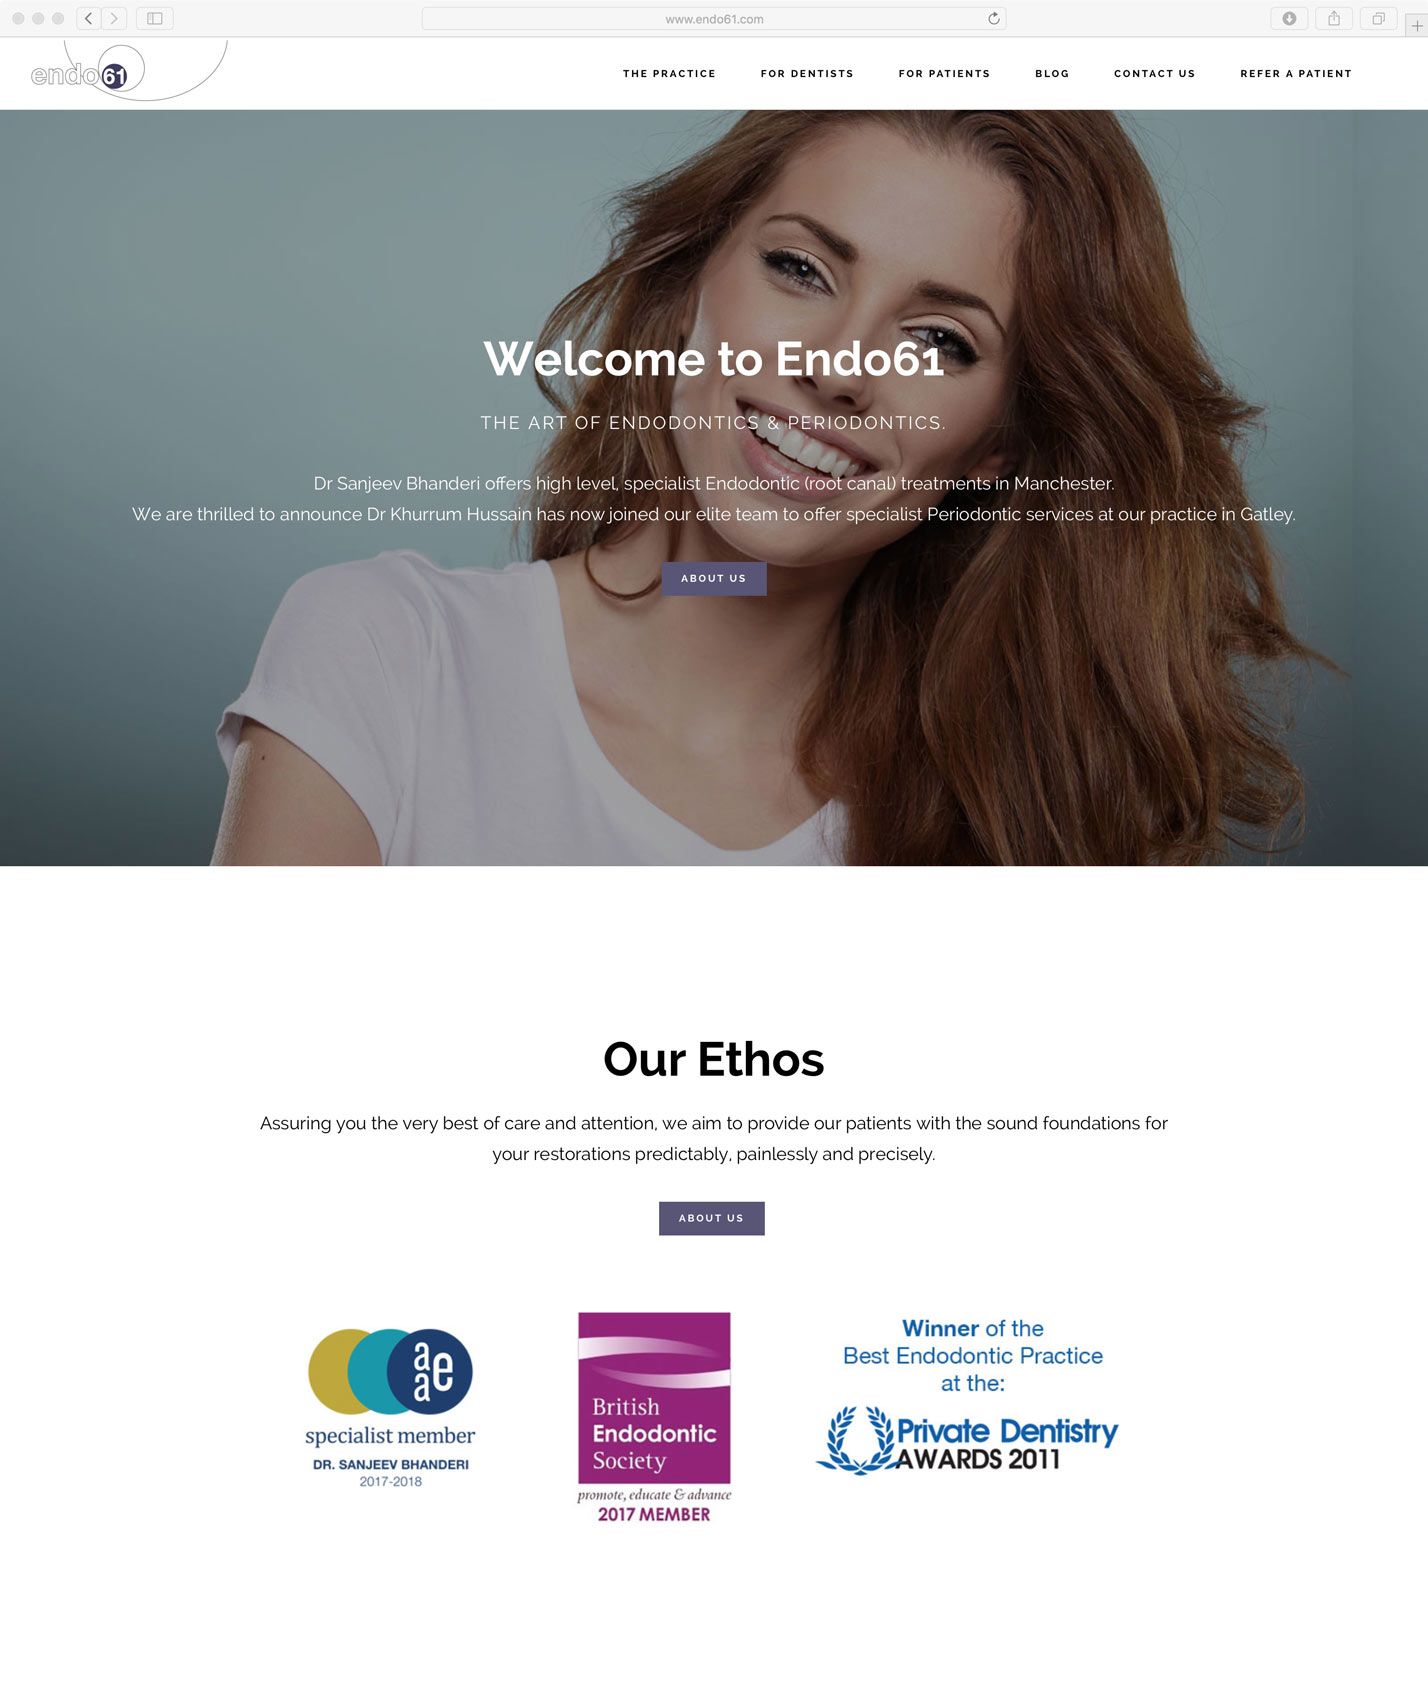 Endo61 website design by Ever Increasing Circles